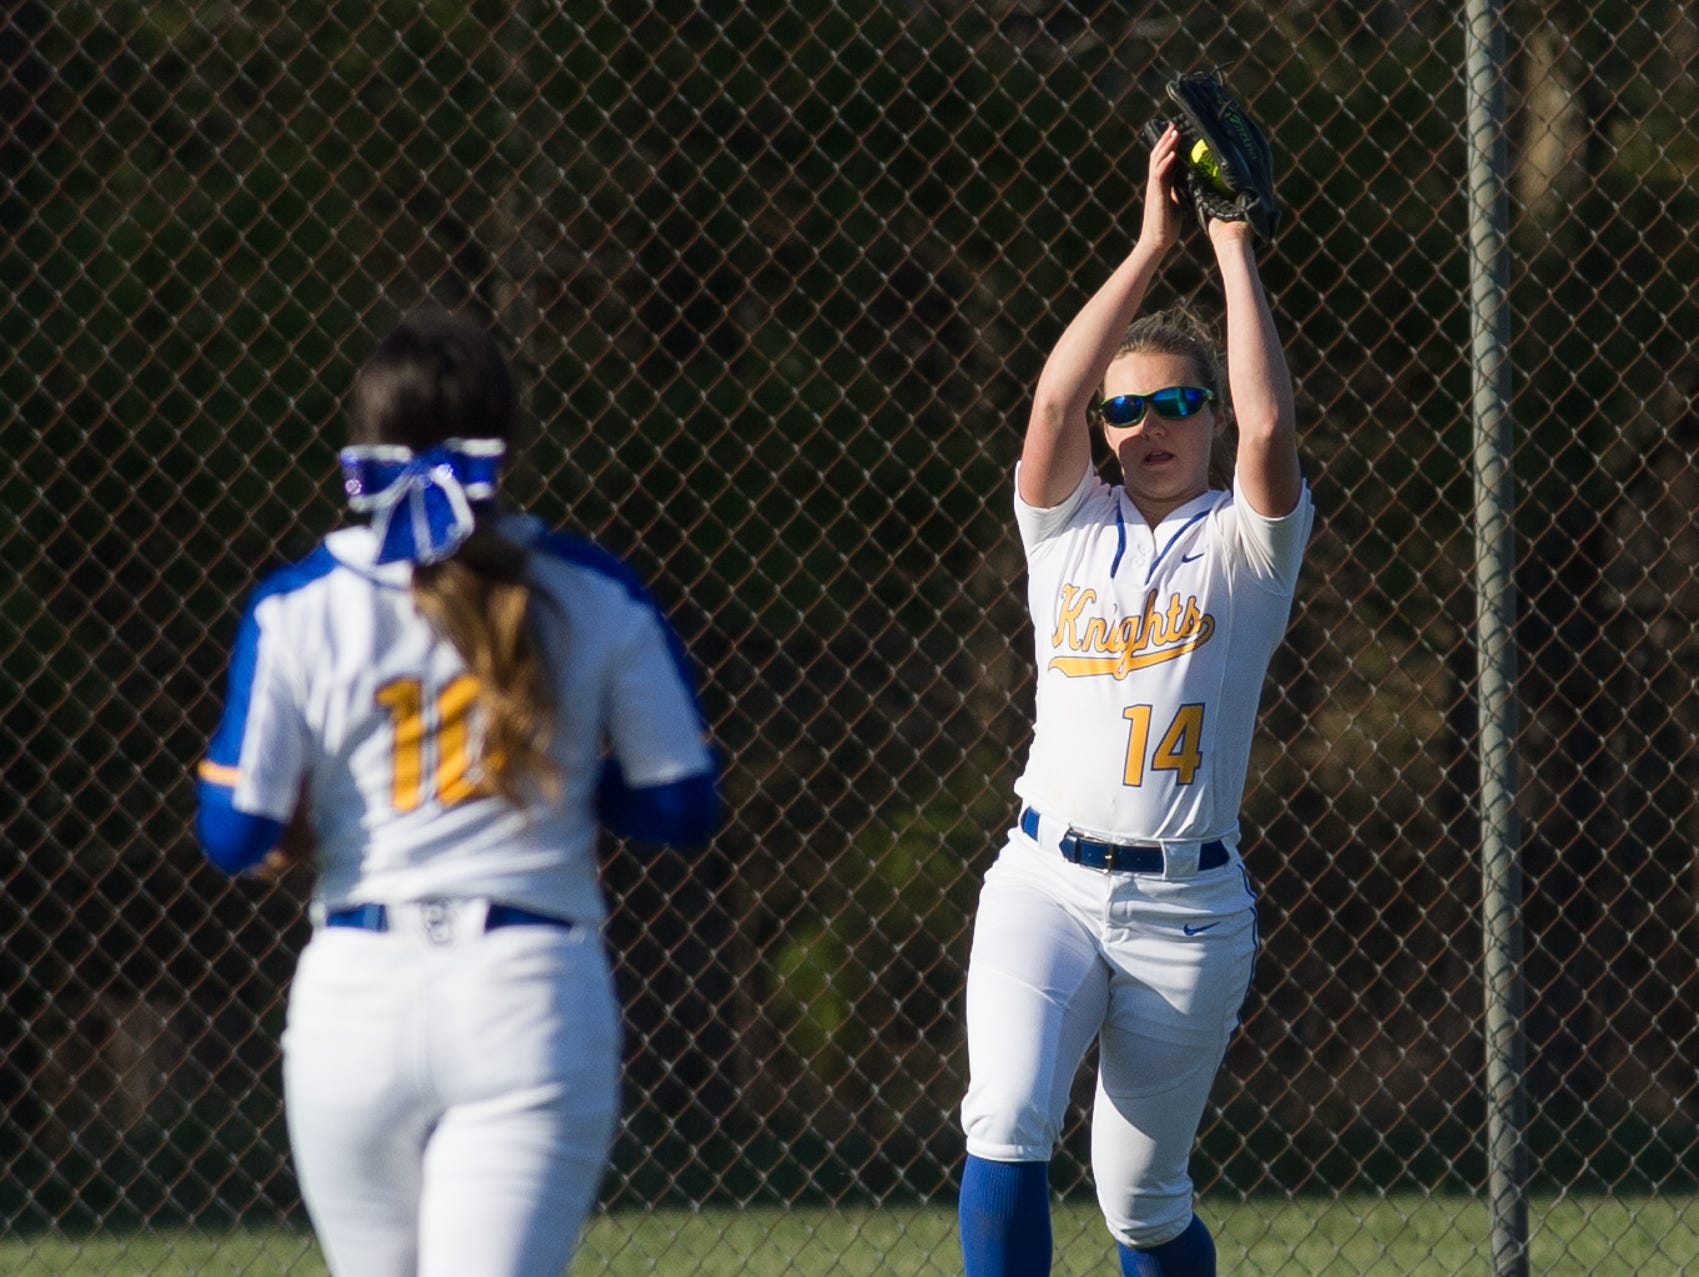 Sussex Central's outfielder Kasie Siimpson (14) makes a catch in their game against Sussex Tech.